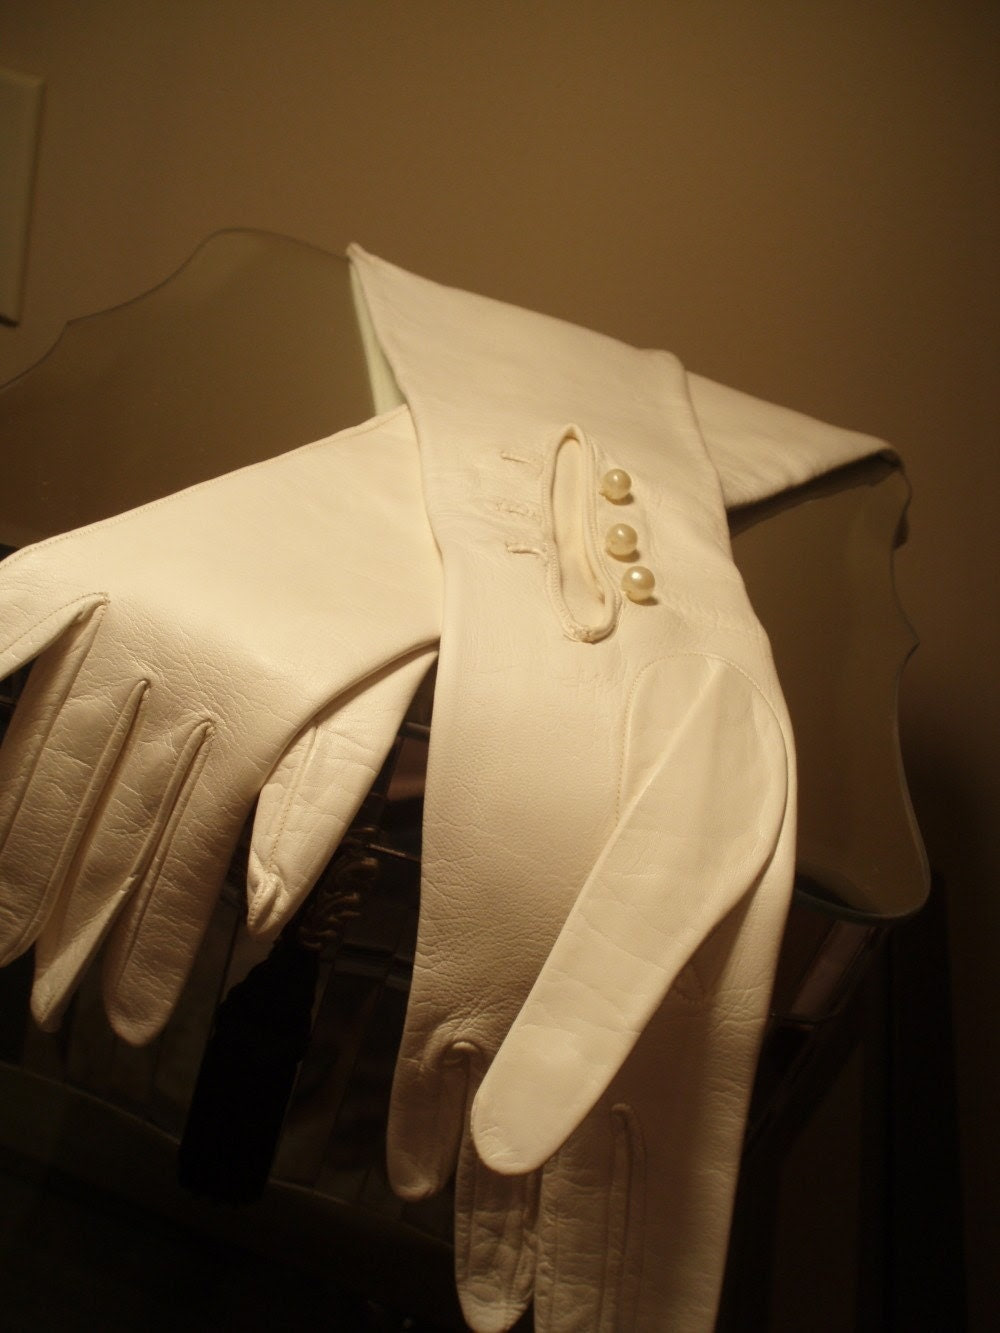 Amazingly Beautiful Antique Leather Gloves for The Bride